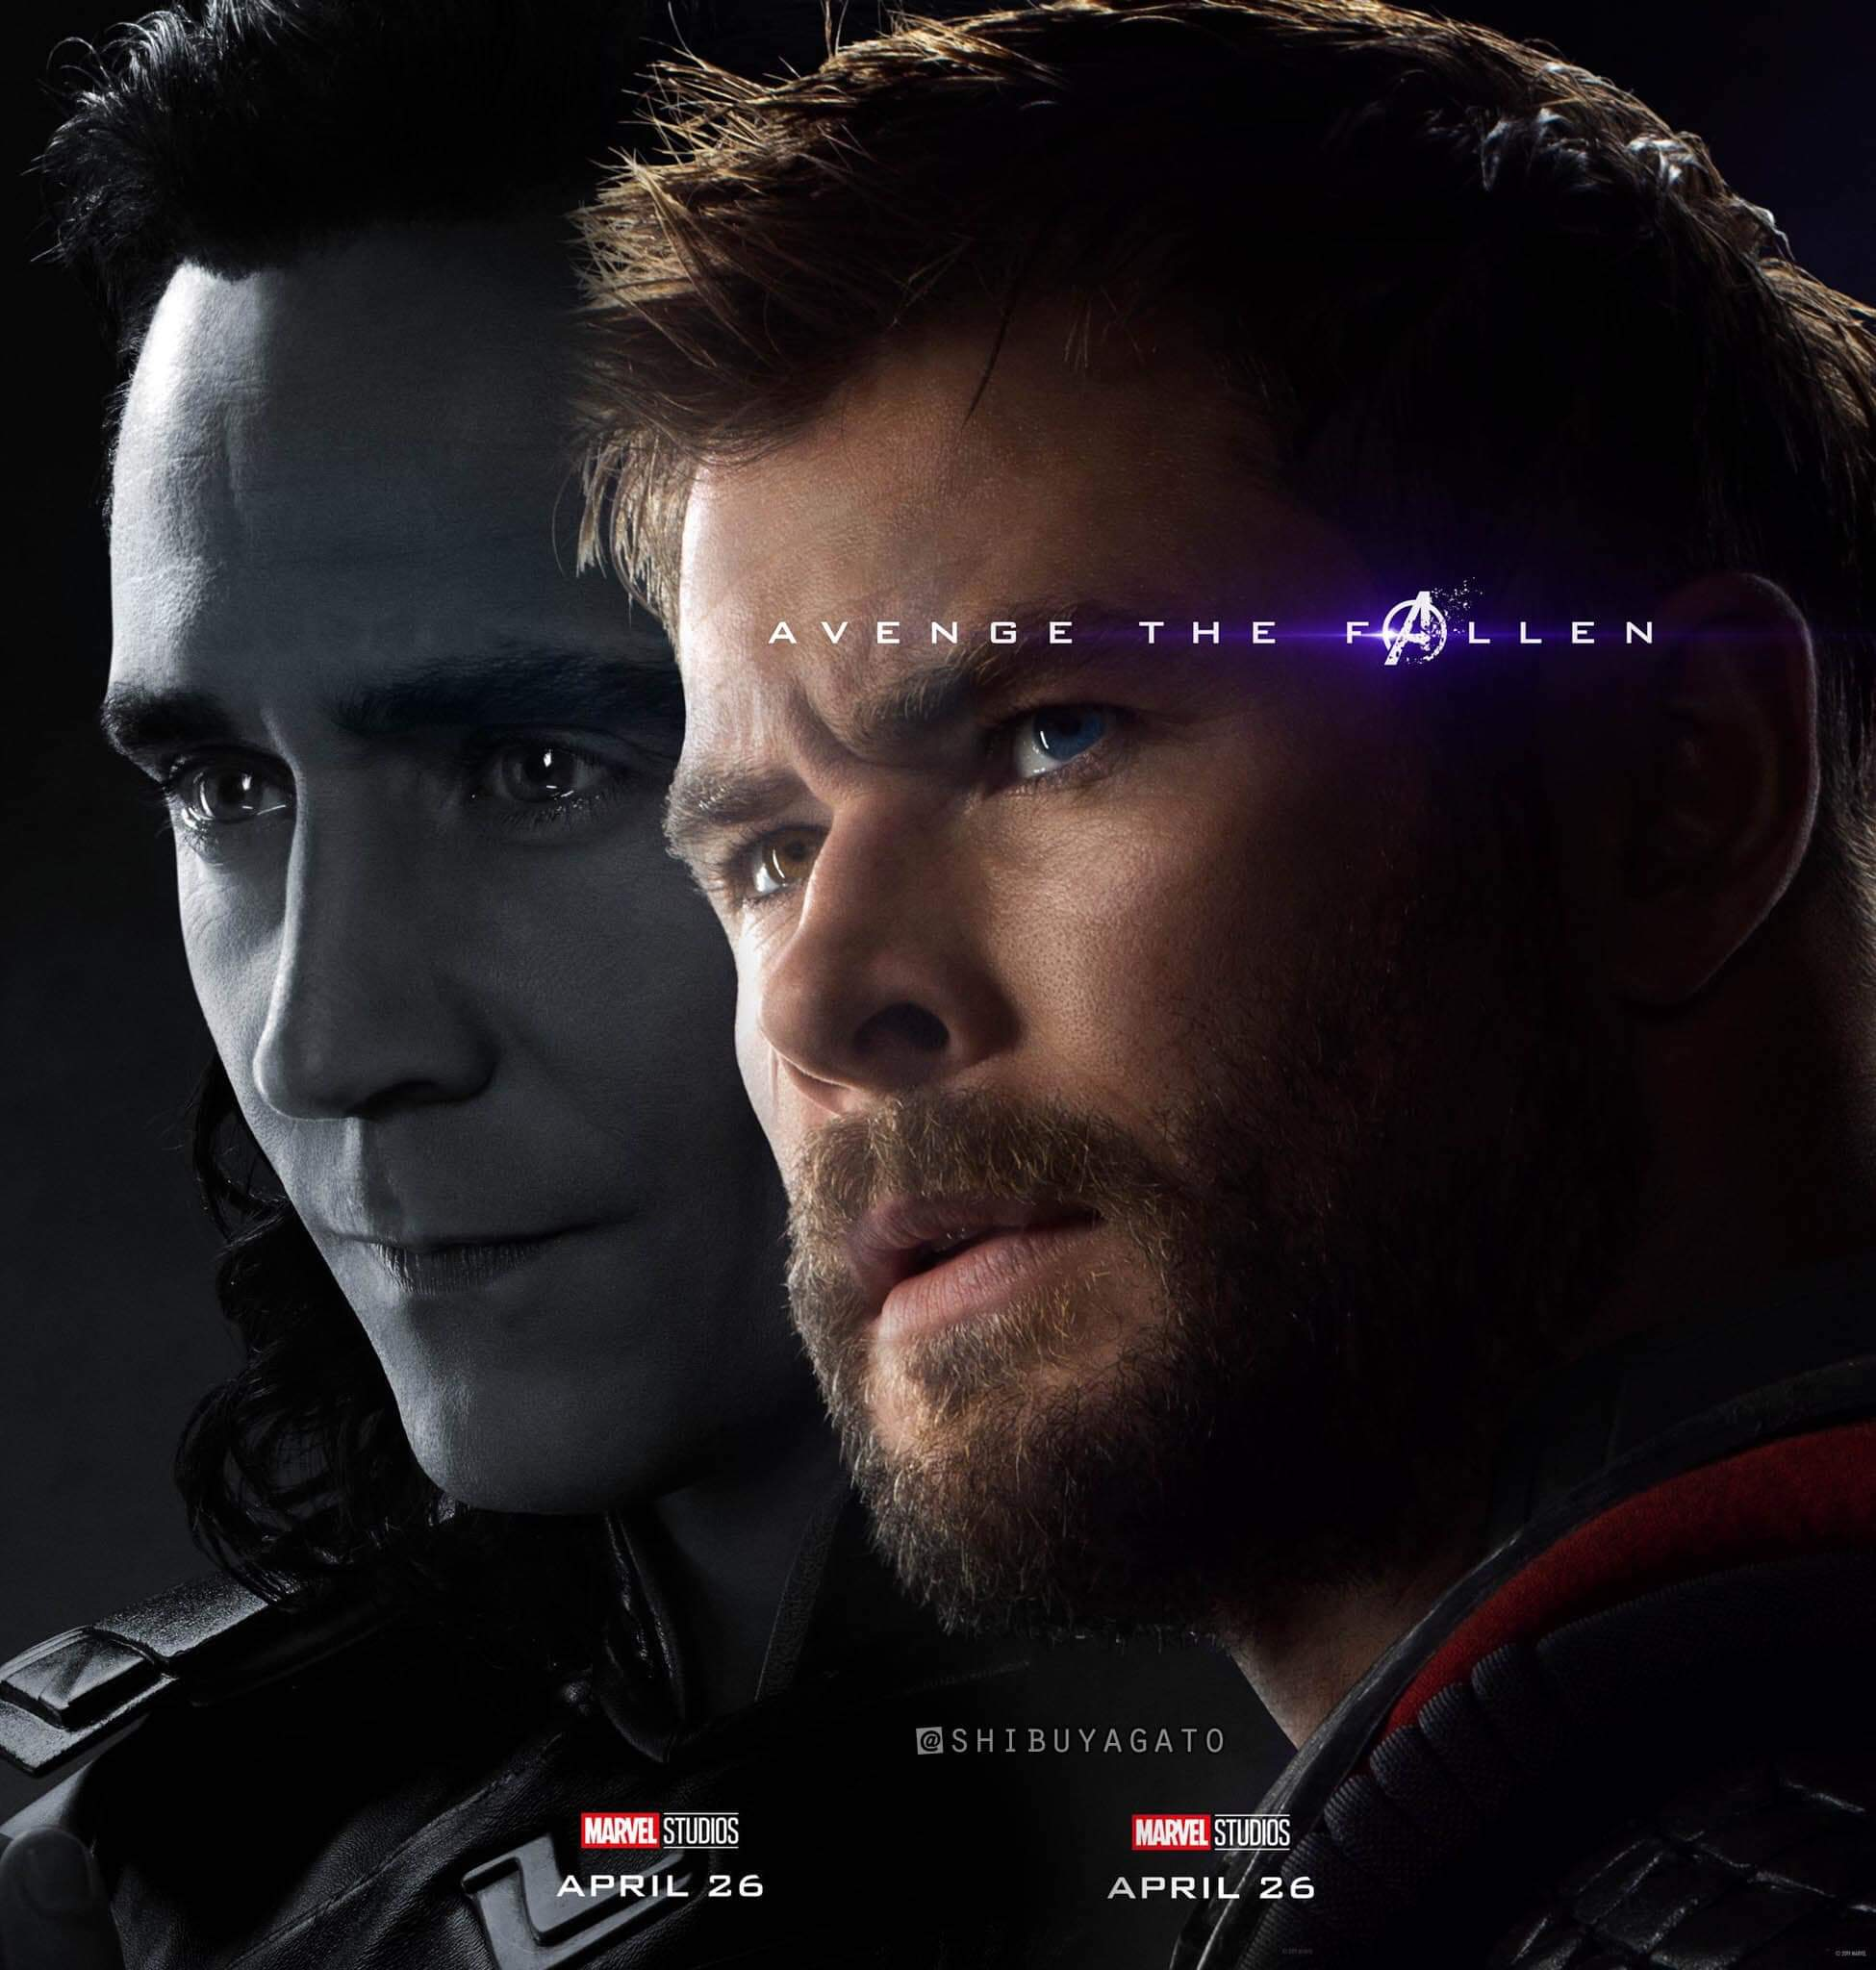 These Avengers Endgame Poster Fan Edits Will Make You Realize That